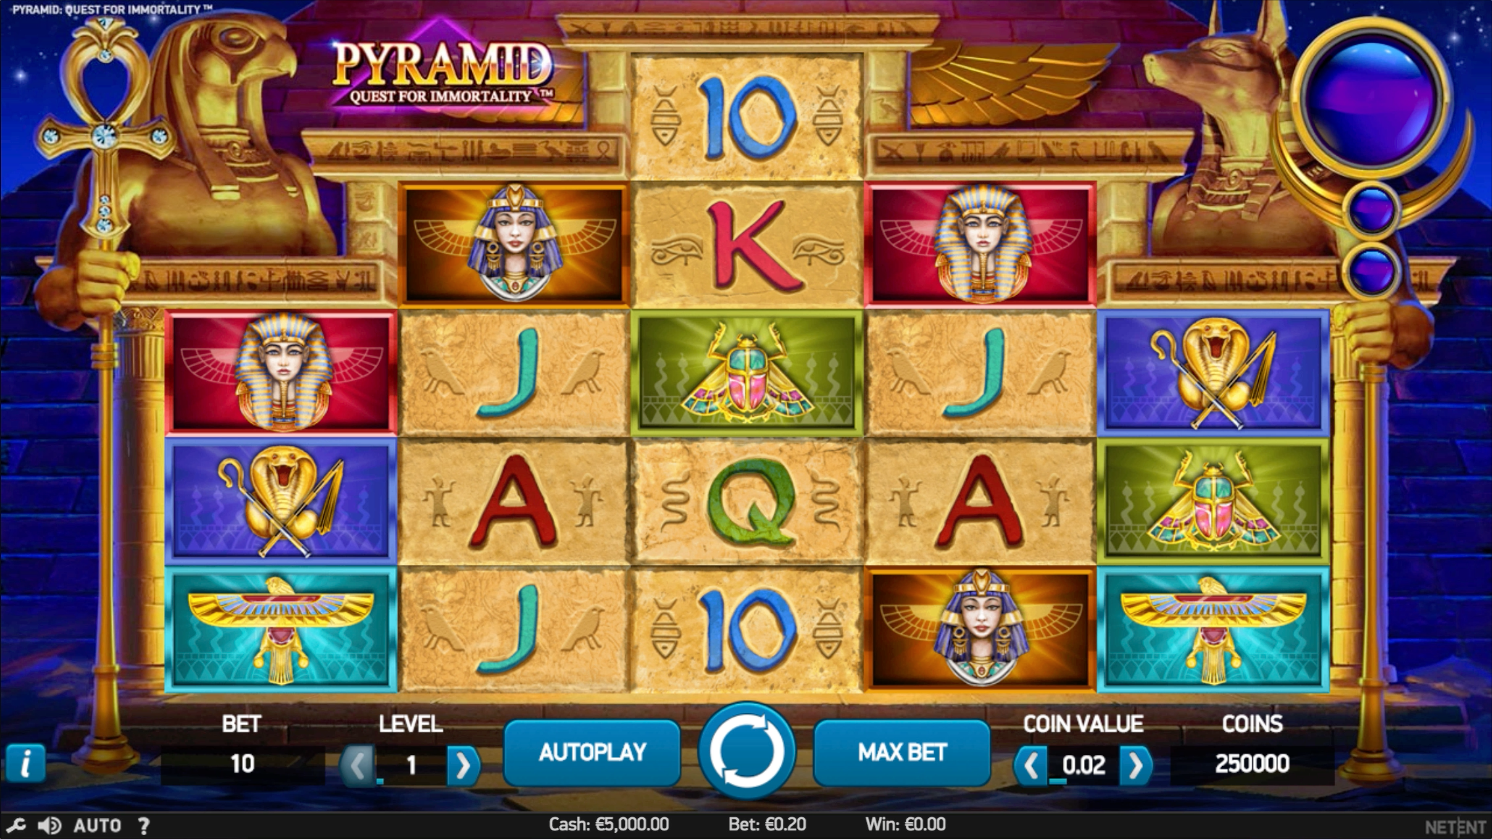 Pyramid: Quest for Immortality™ (NetEnt)